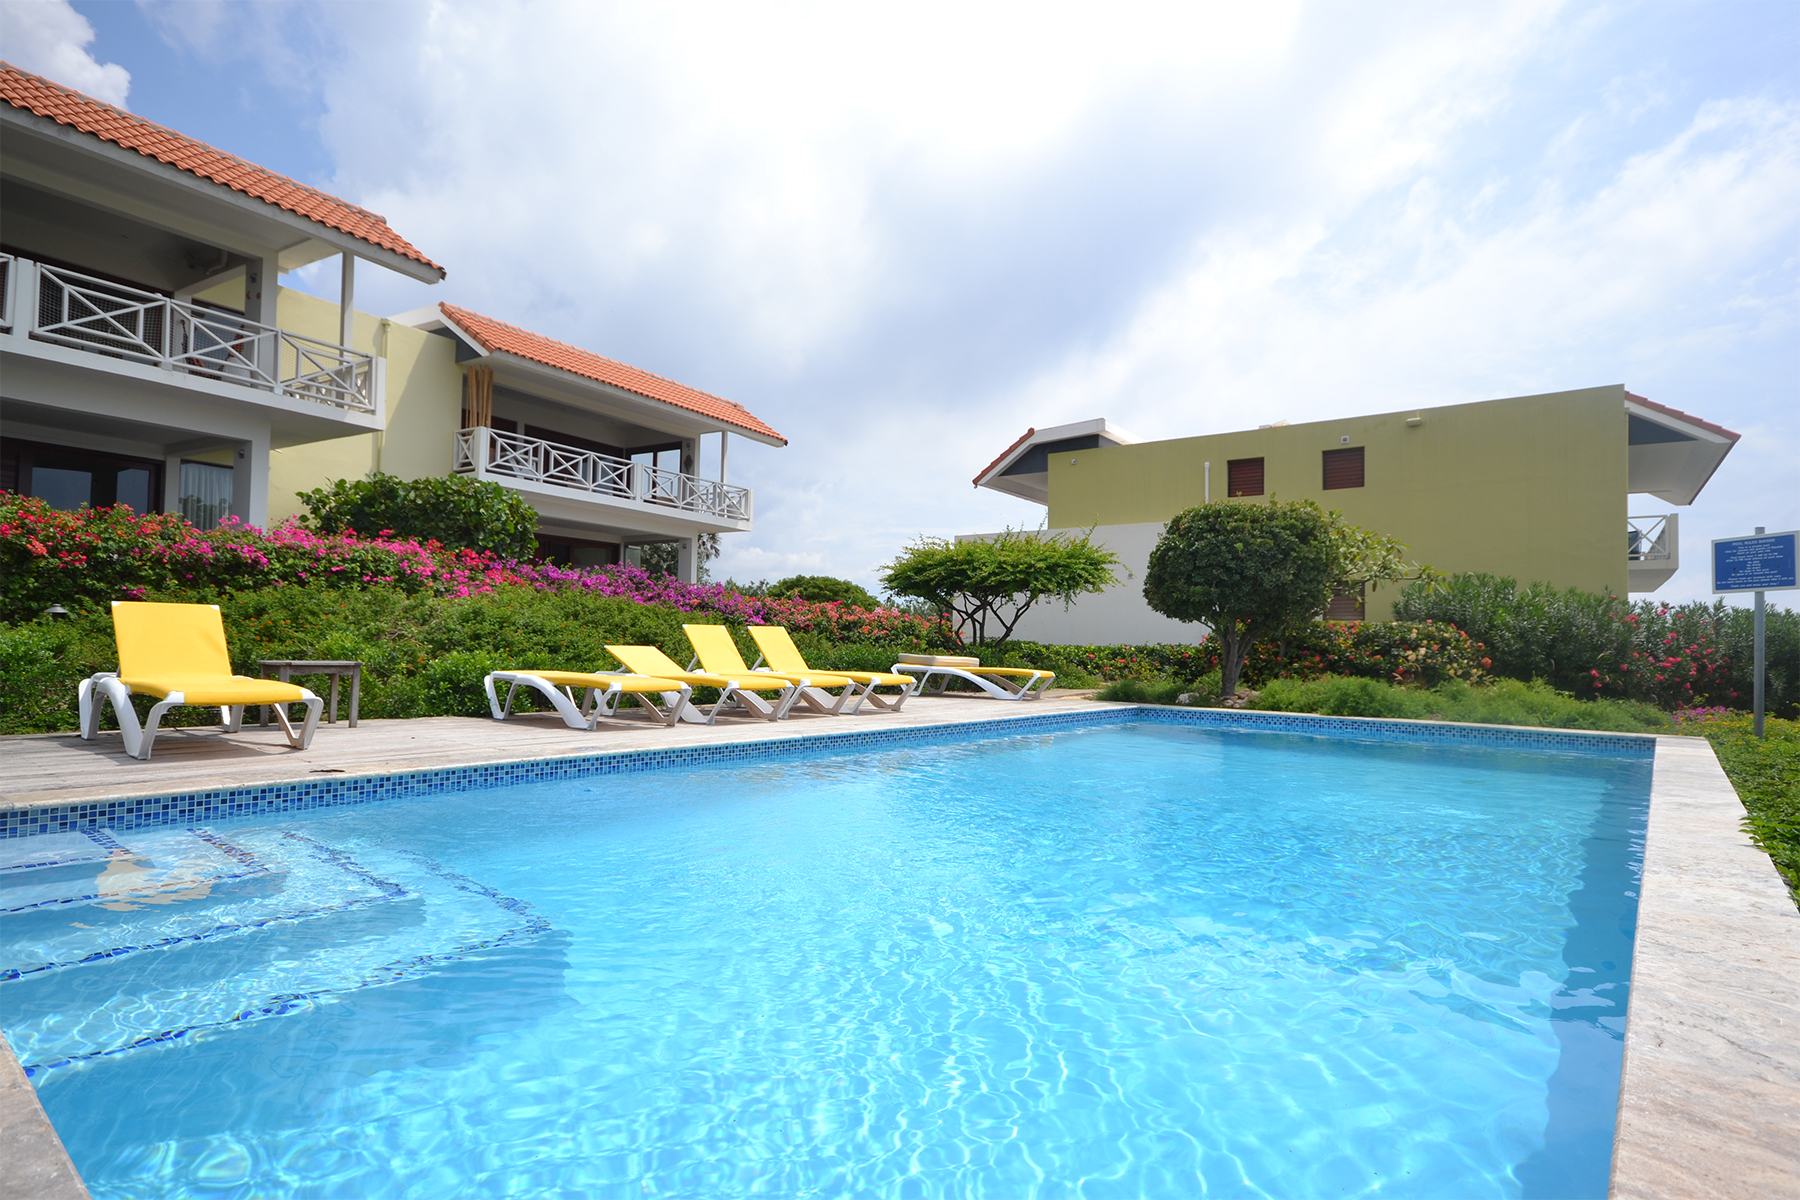 Apartment for Sale at Boca Gentil Bayside 8 Other Cities In Curacao, Cities In Curacao Curacao